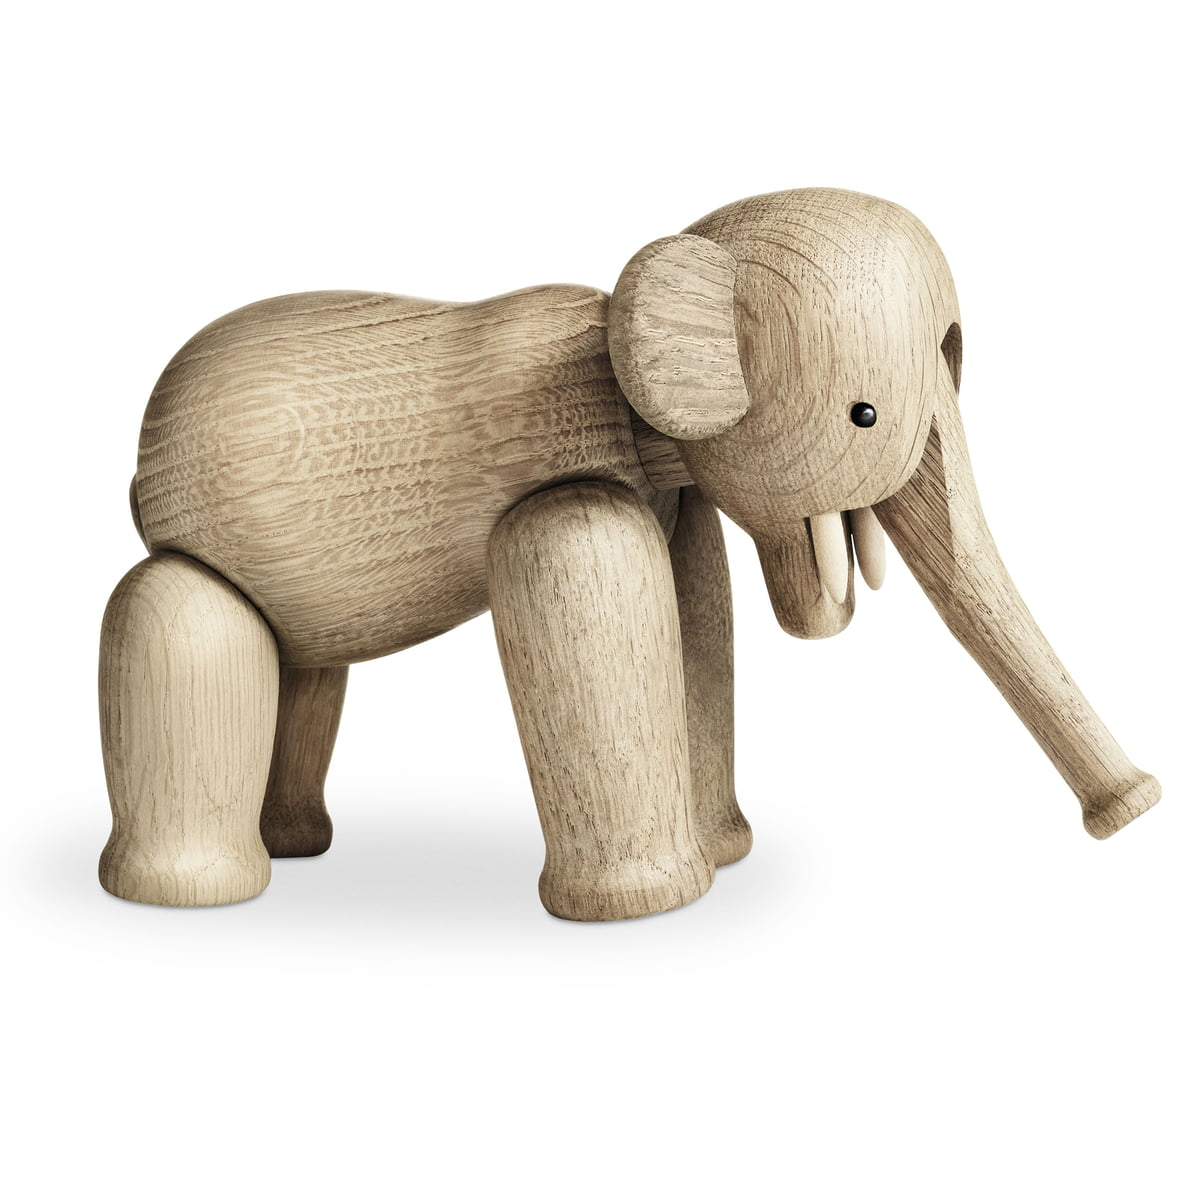 The Wooden Elephant by Kay Bojesen